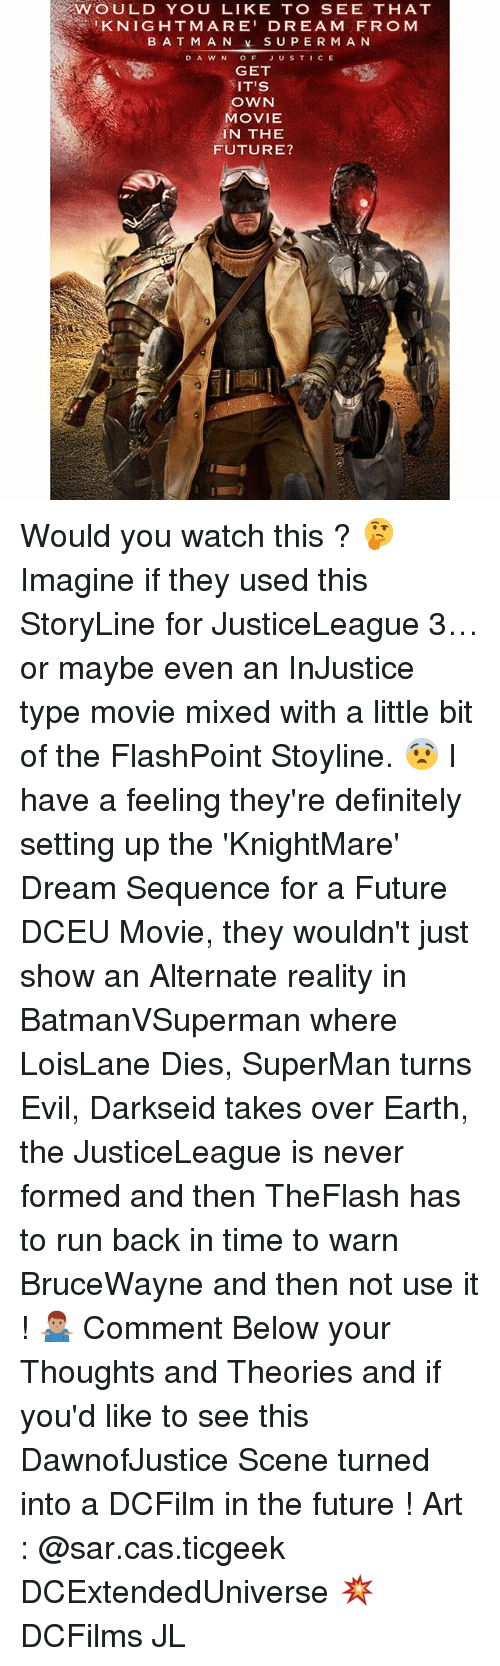 Batman, Definitely, and Future: WOULD YOU LIKE TO SEE THAT  KNIGHTMARE' DREAM FRO M  BATMAN  SUPERMAN  DAWN OF JUSTICE  GET  IT'S  OWN  MOVIE  IN THE  FUTURE? Would you watch this ? 🤔 Imagine if they used this StoryLine for JusticeLeague 3…or maybe even an InJustice type movie mixed with a little bit of the FlashPoint Stoyline. 😨 I have a feeling they're definitely setting up the 'KnightMare' Dream Sequence for a Future DCEU Movie, they wouldn't just show an Alternate reality in BatmanVSuperman where LoisLane Dies, SuperMan turns Evil, Darkseid takes over Earth, the JusticeLeague is never formed and then TheFlash has to run back in time to warn BruceWayne and then not use it ! 🤷🏽♂️ Comment Below your Thoughts and Theories and if you'd like to see this DawnofJustice Scene turned into a DCFilm in the future ! Art : @sar.cas.ticgeek DCExtendedUniverse 💥 DCFilms JL